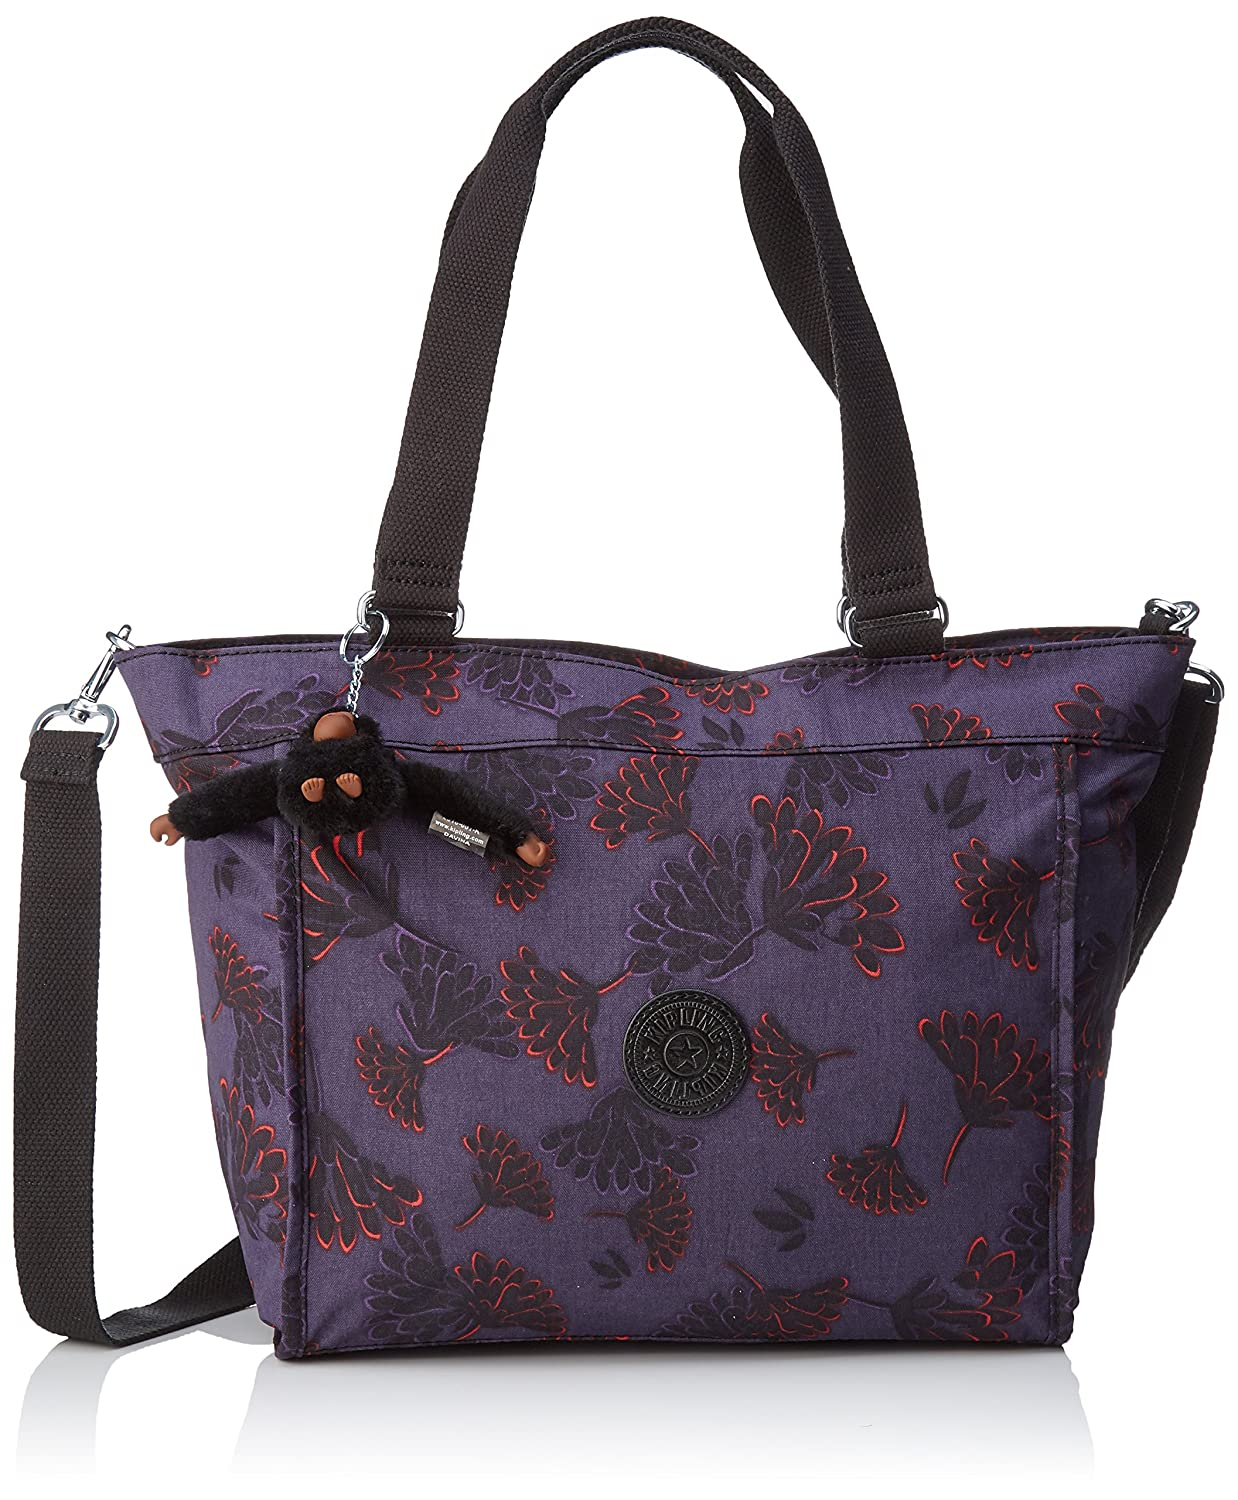 e1c607e24 Kipling New Shopper S - Bolsos totes Mujer Kipling - New Shopper S Gold  (Metallic